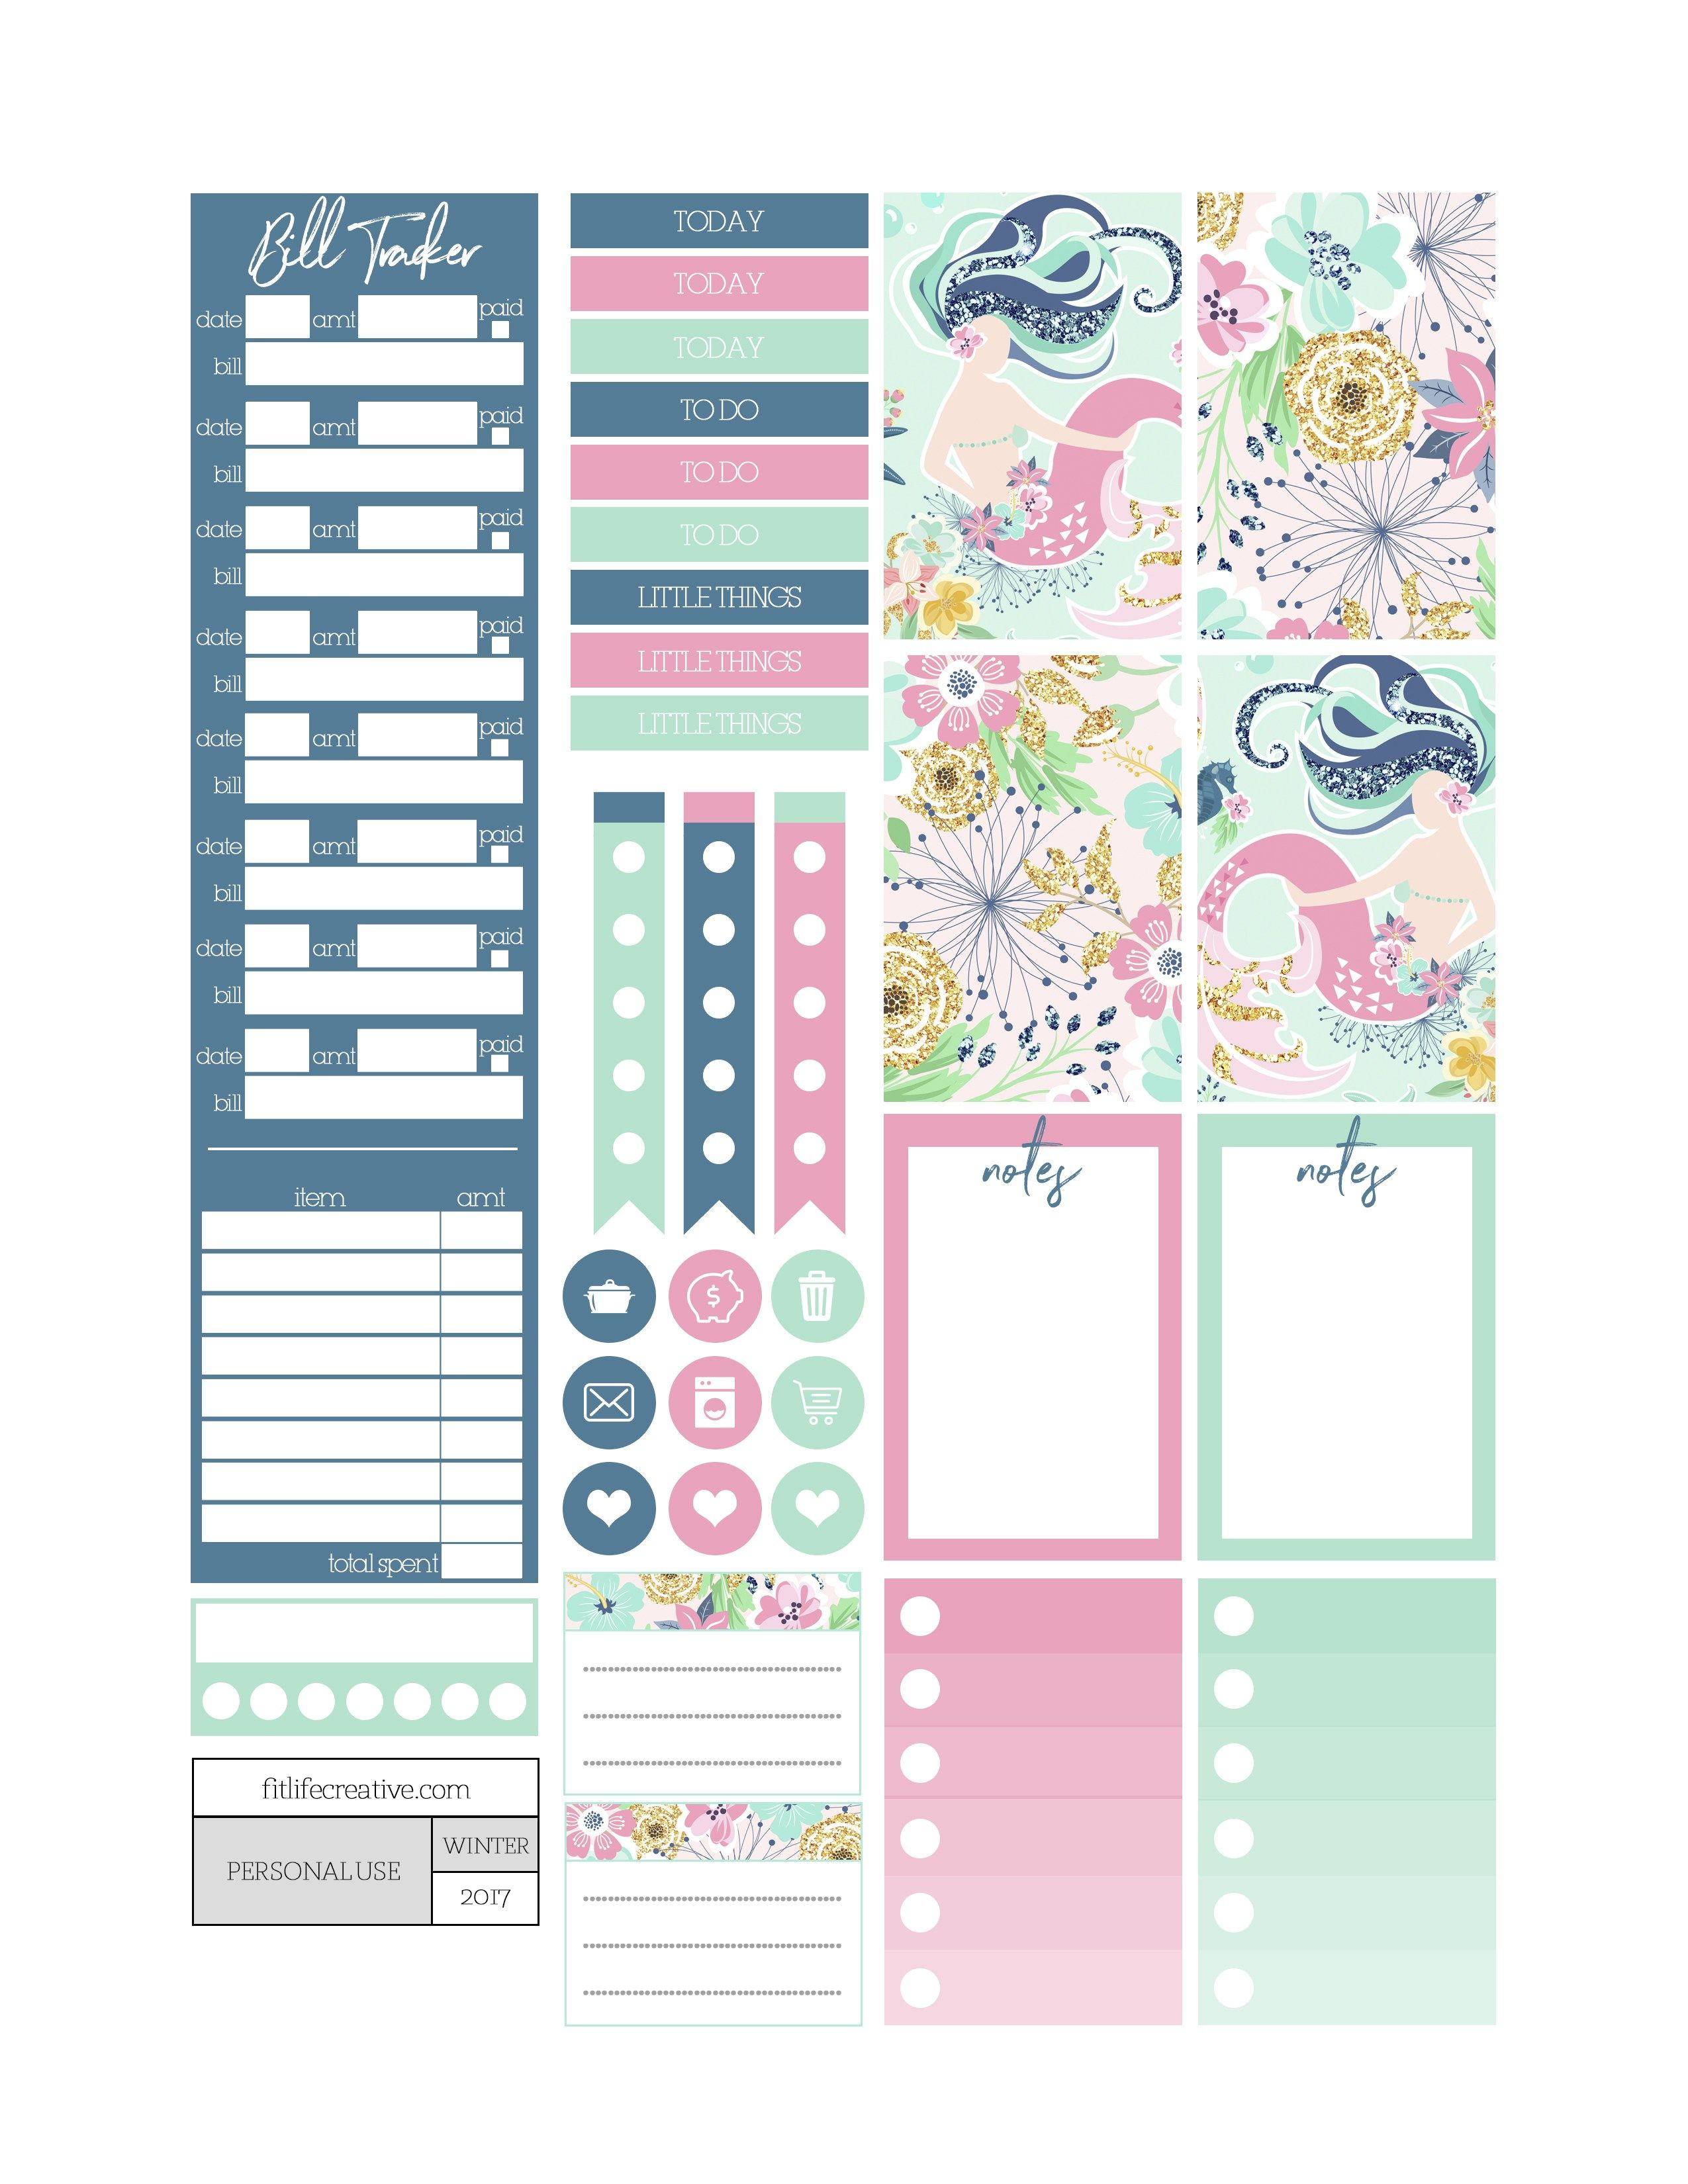 free printable dancing with mermaids planner stickers from fit life